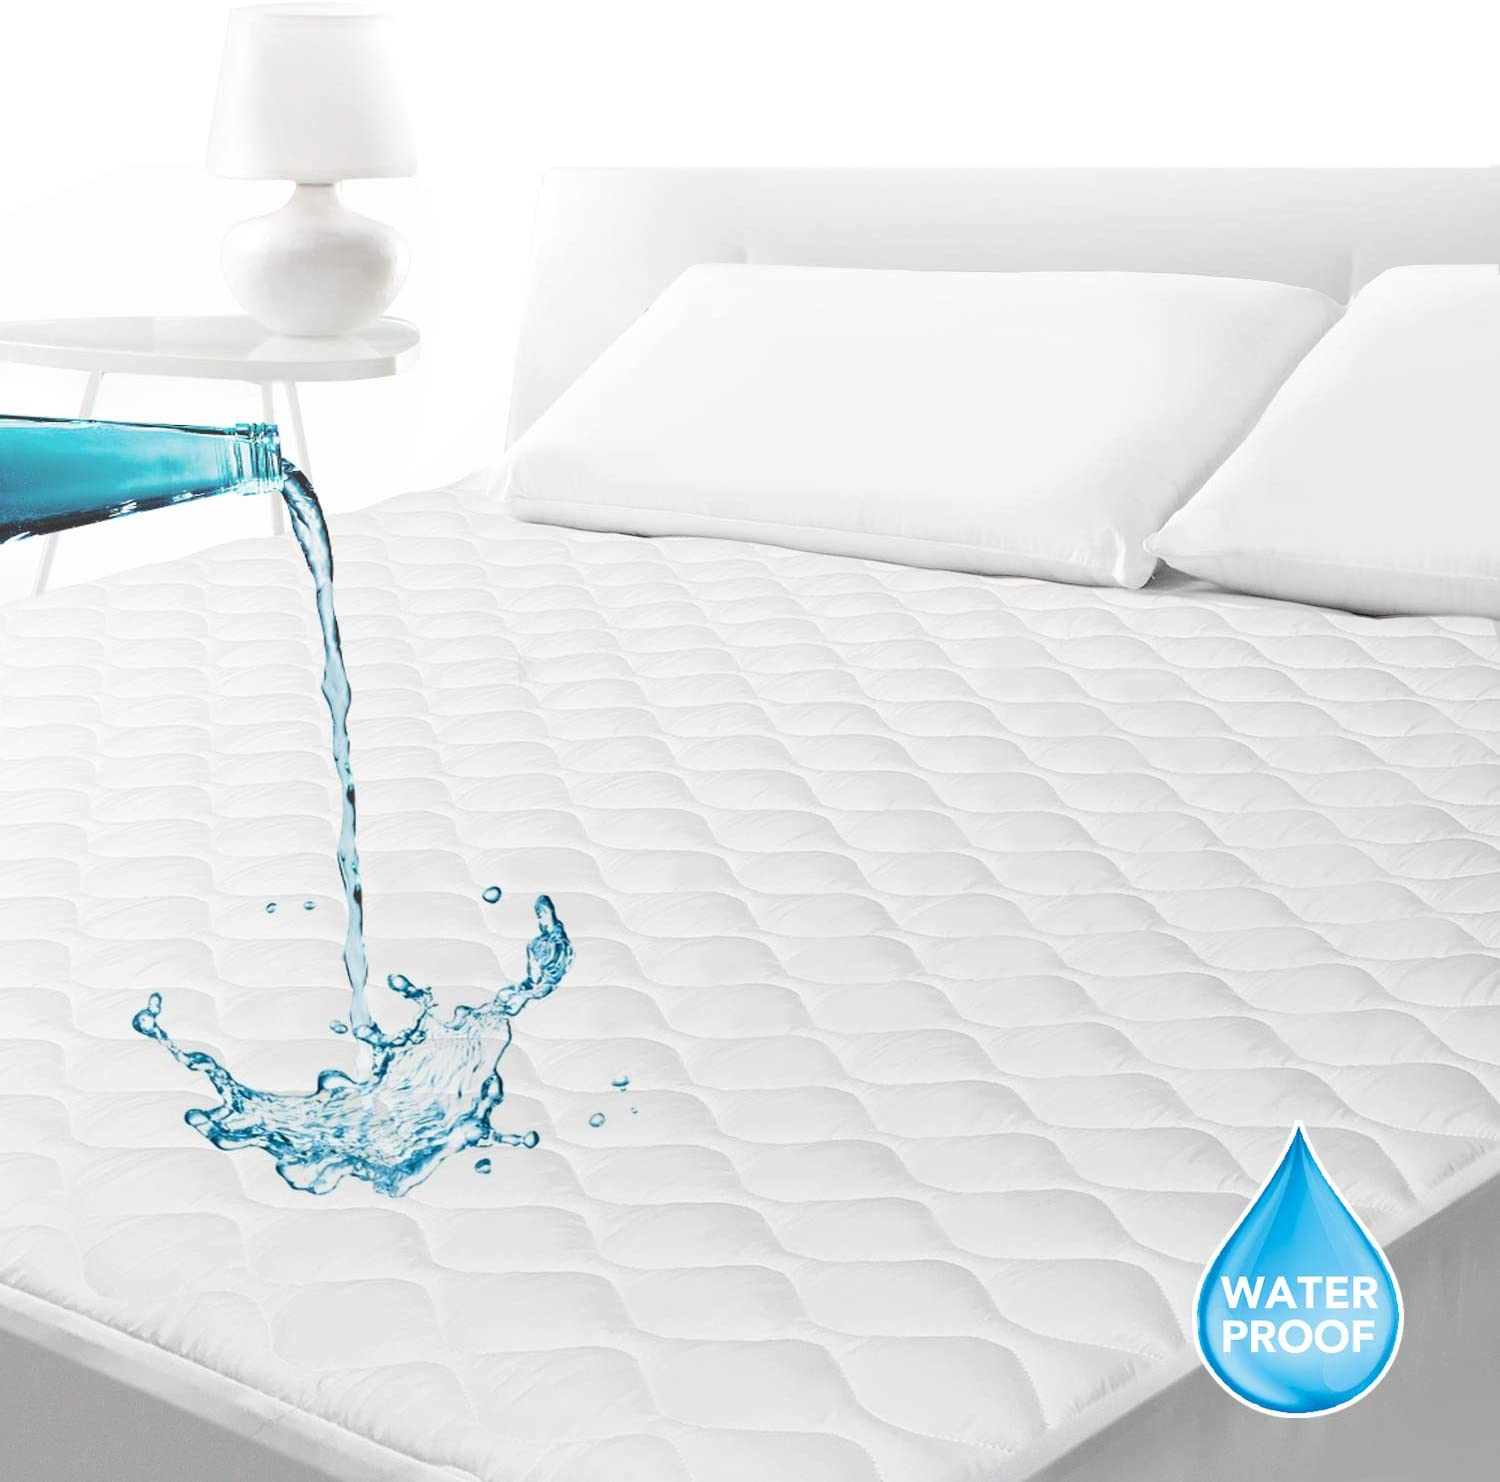 SLEEP ACADEMY Waterproof Quilted Fitted Mattress Pad Twin XL, Breathable Mattress Protector Hypoallergenic, Soft, Vinyl Free